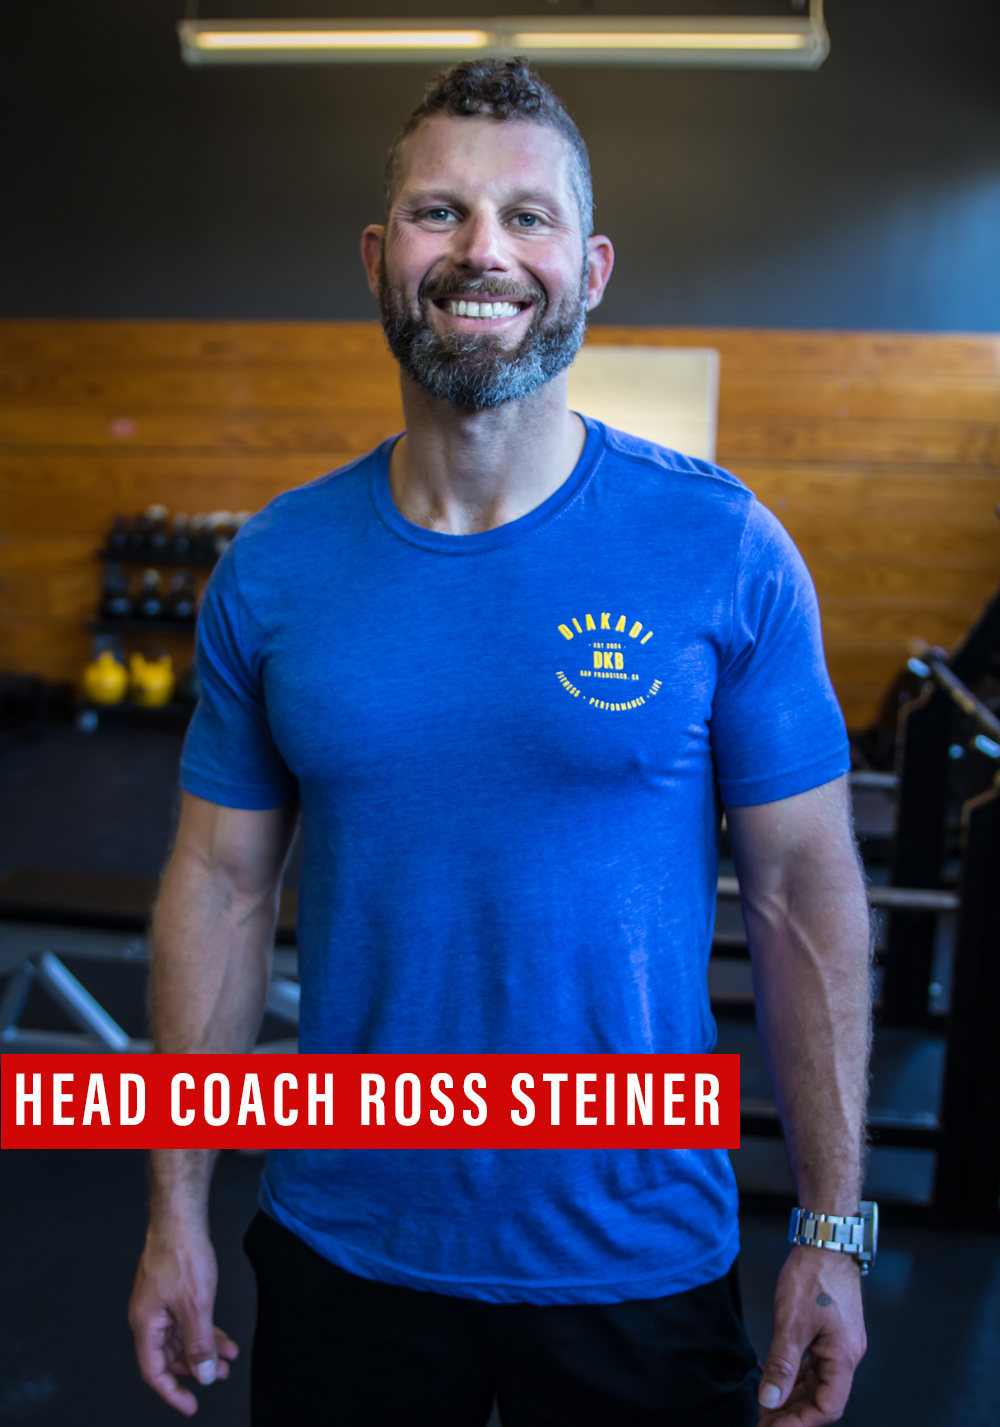 ross-steiner-personal-training.jpg